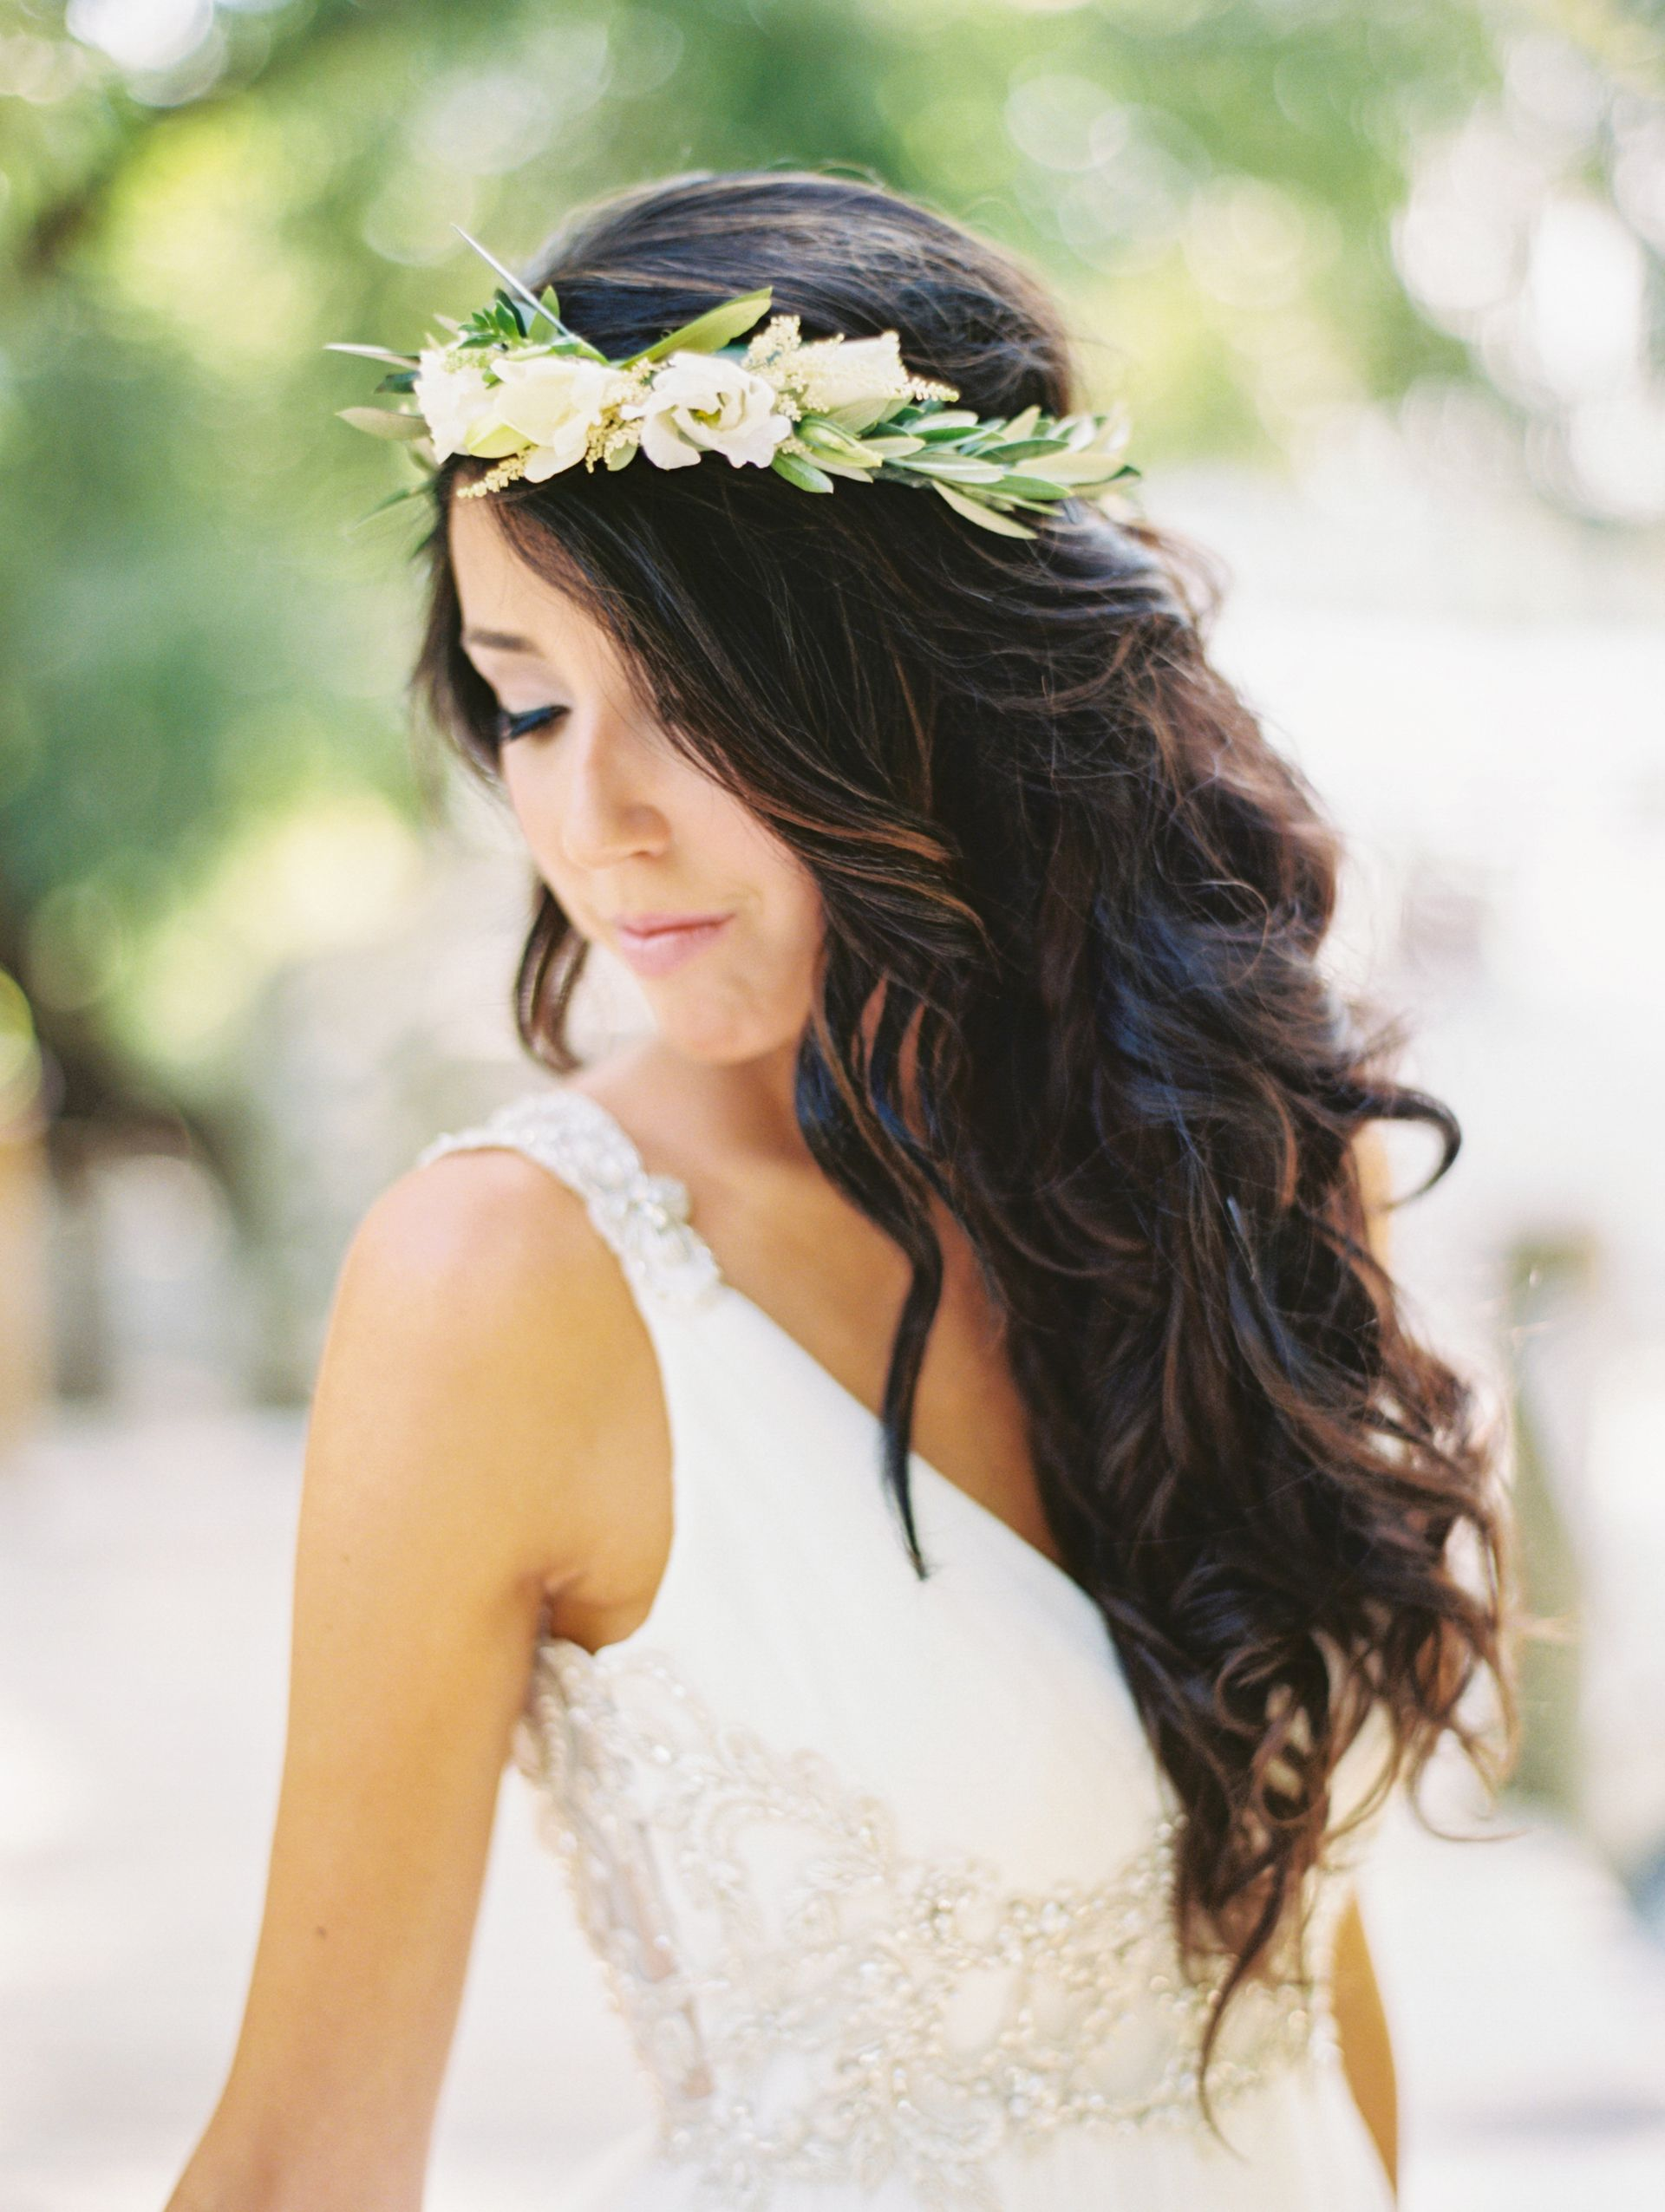 Luscious Brunette Bridal Curls White Flower Crown Natural Wedding